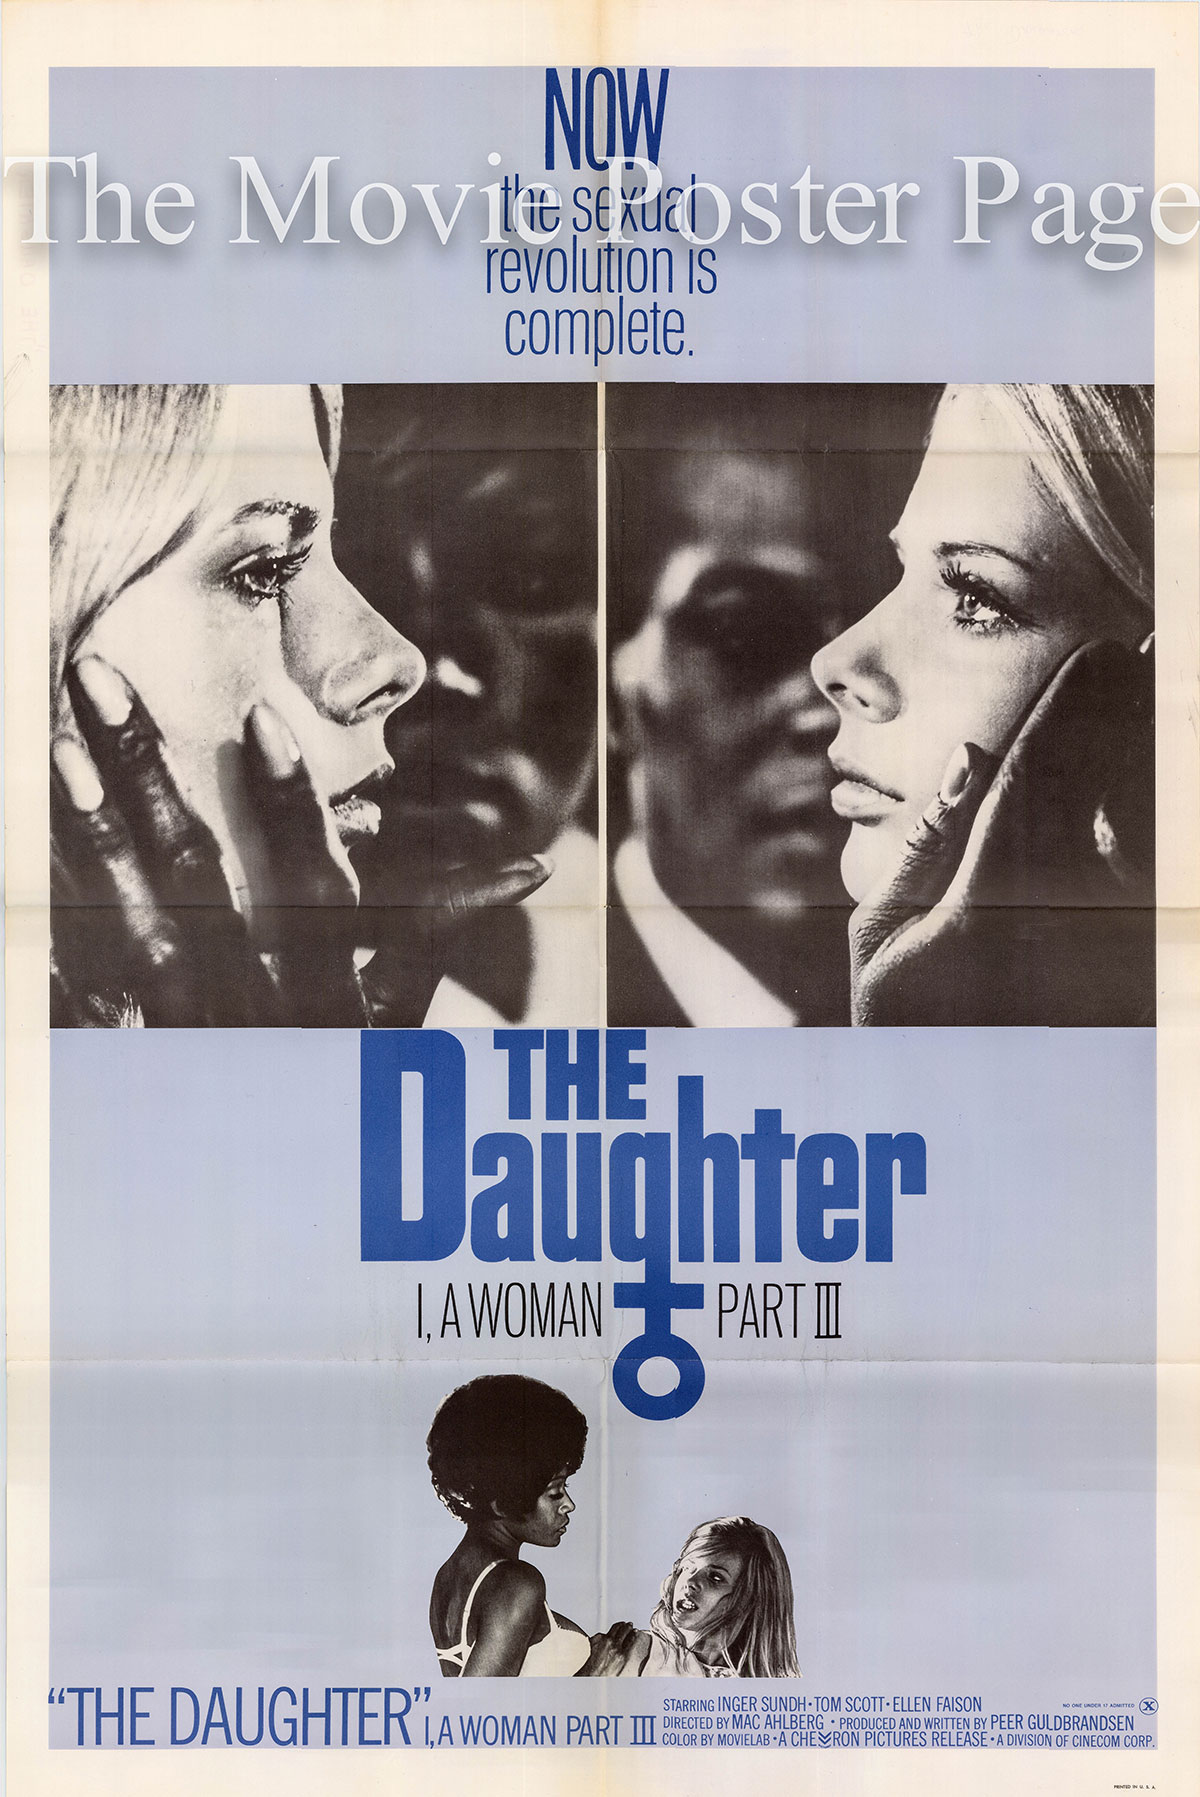 Pictured is a US one-sheet poster for the 1970 Mac Ahlberg film The Daugher: I, a woman Part III starring Gun Falck as Siv.